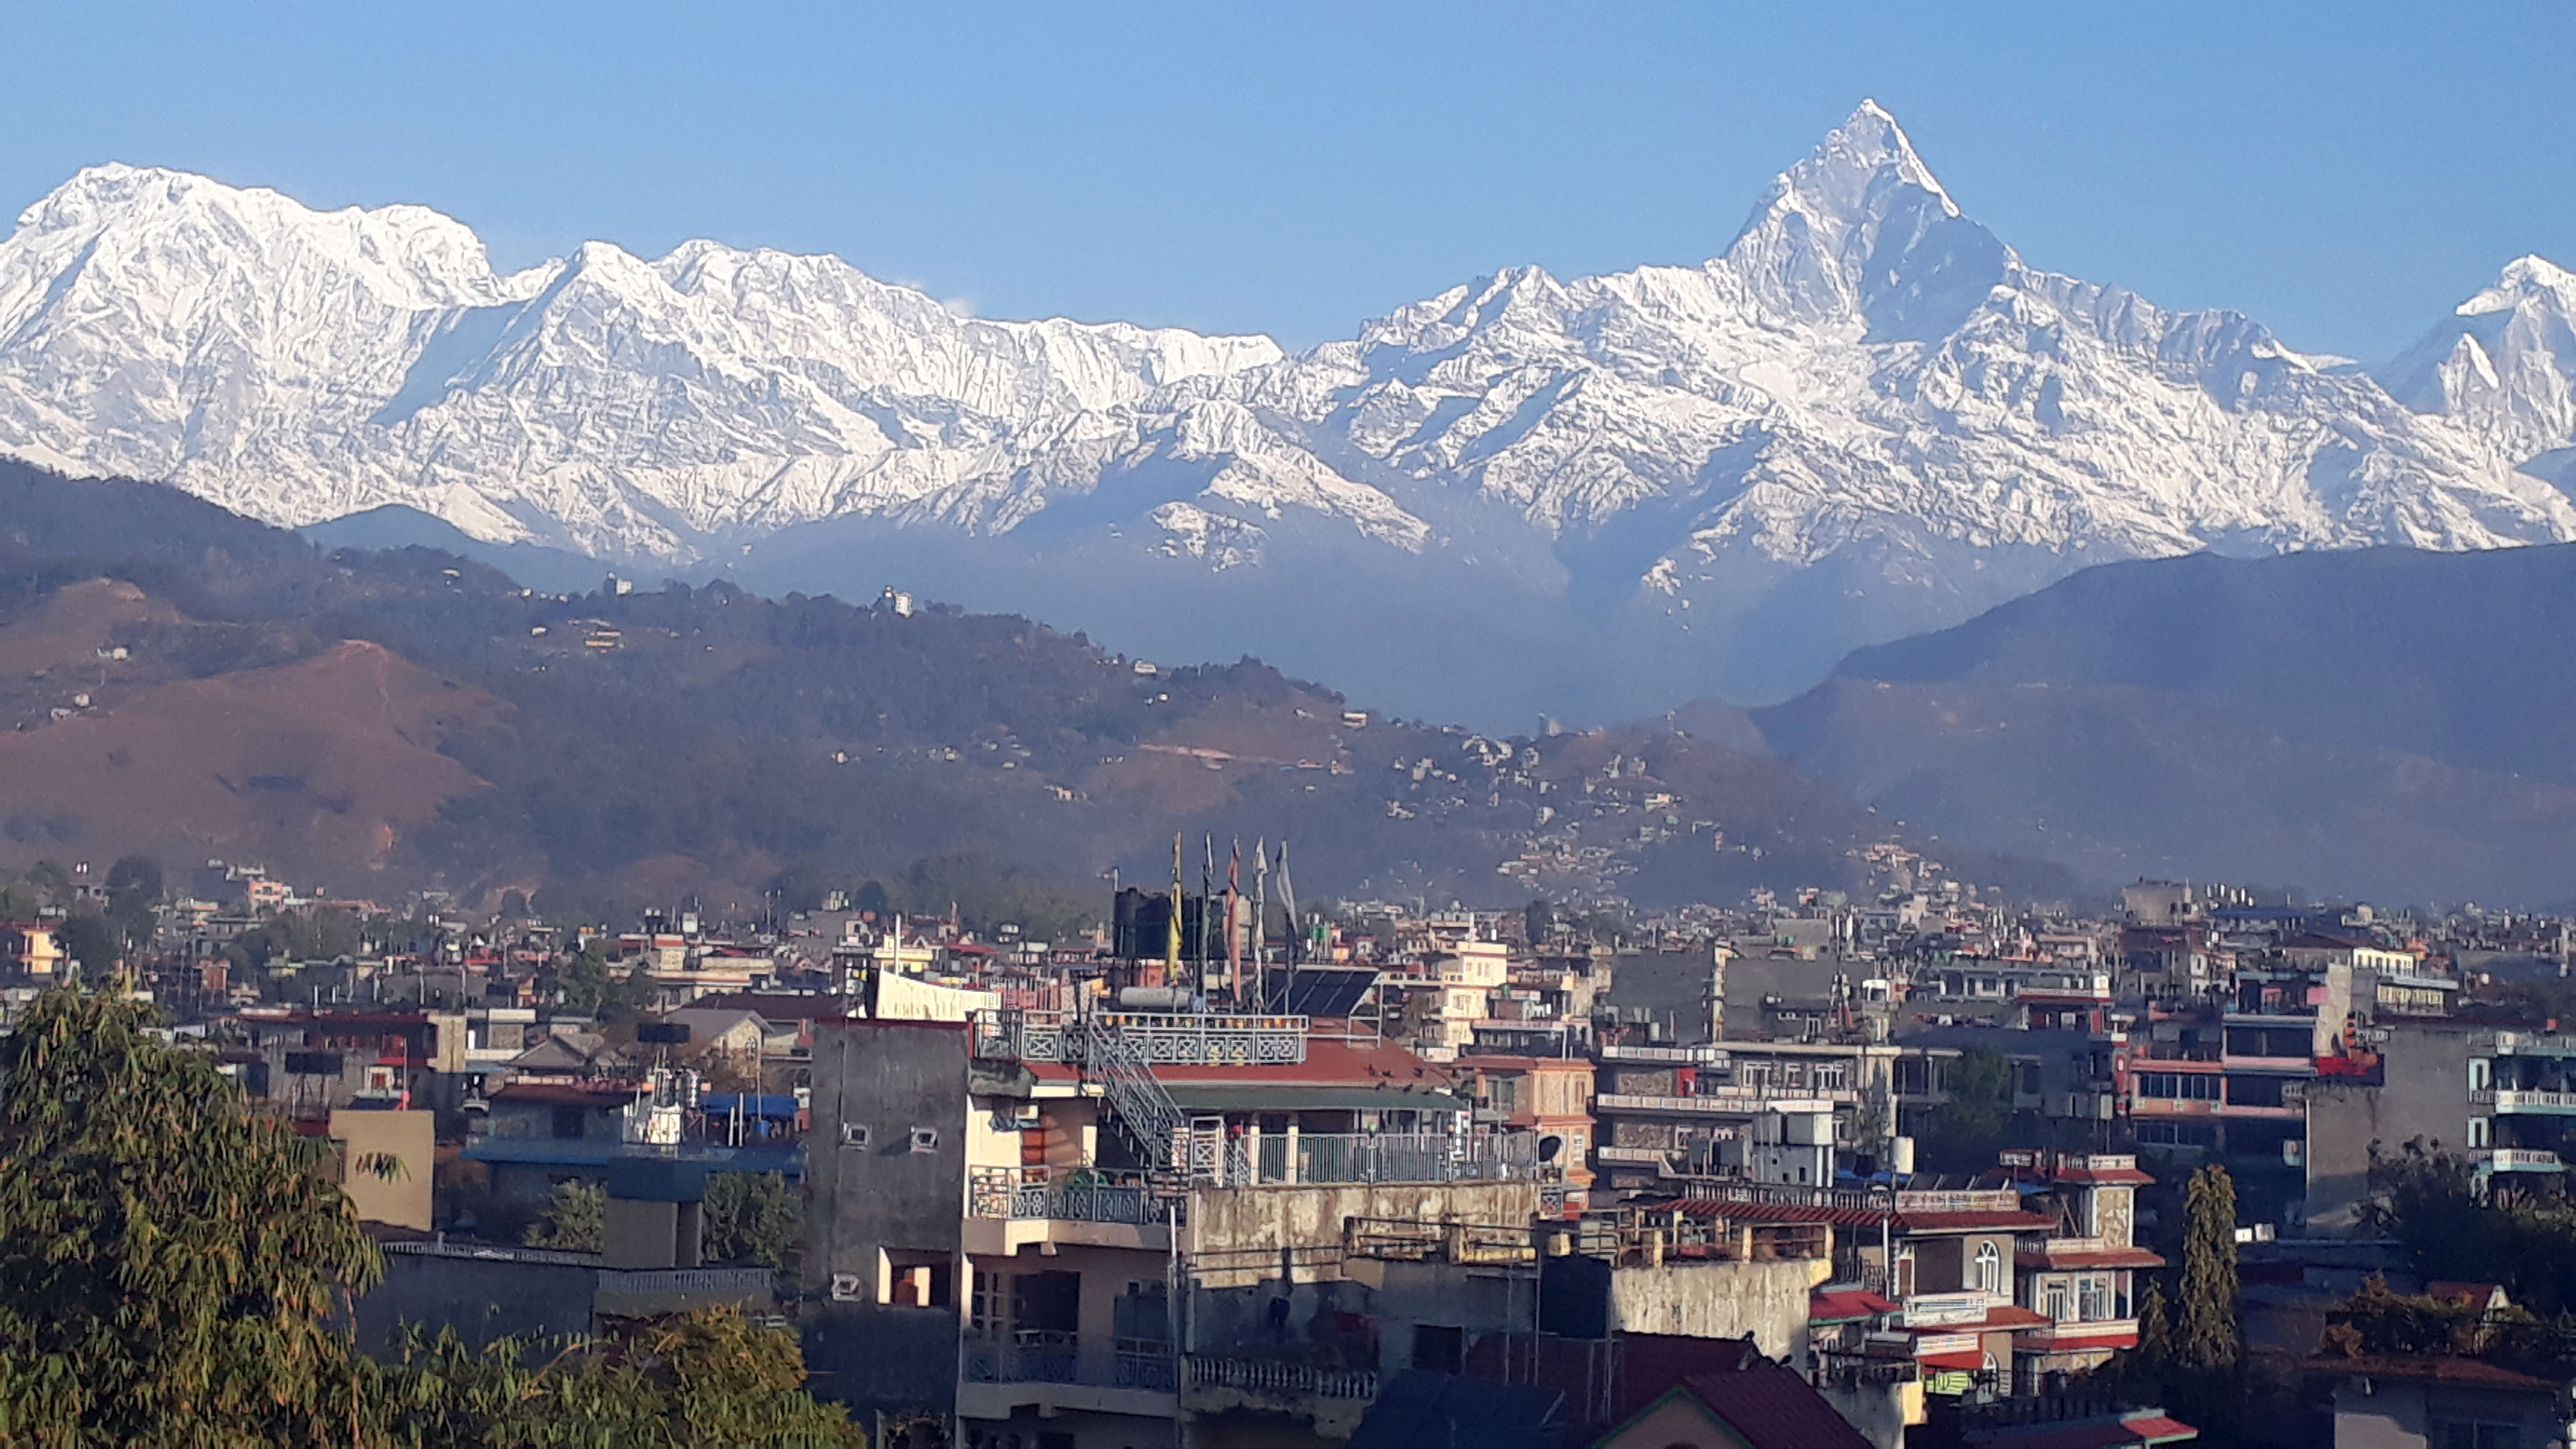 Annapurna range and Machhapuchhre Mountain as seen from Pokhara on Thursday, January 24, 2019, as the skies gradually cleared after snow fall over the week. Photo: Rishi Ram Baral/THT n